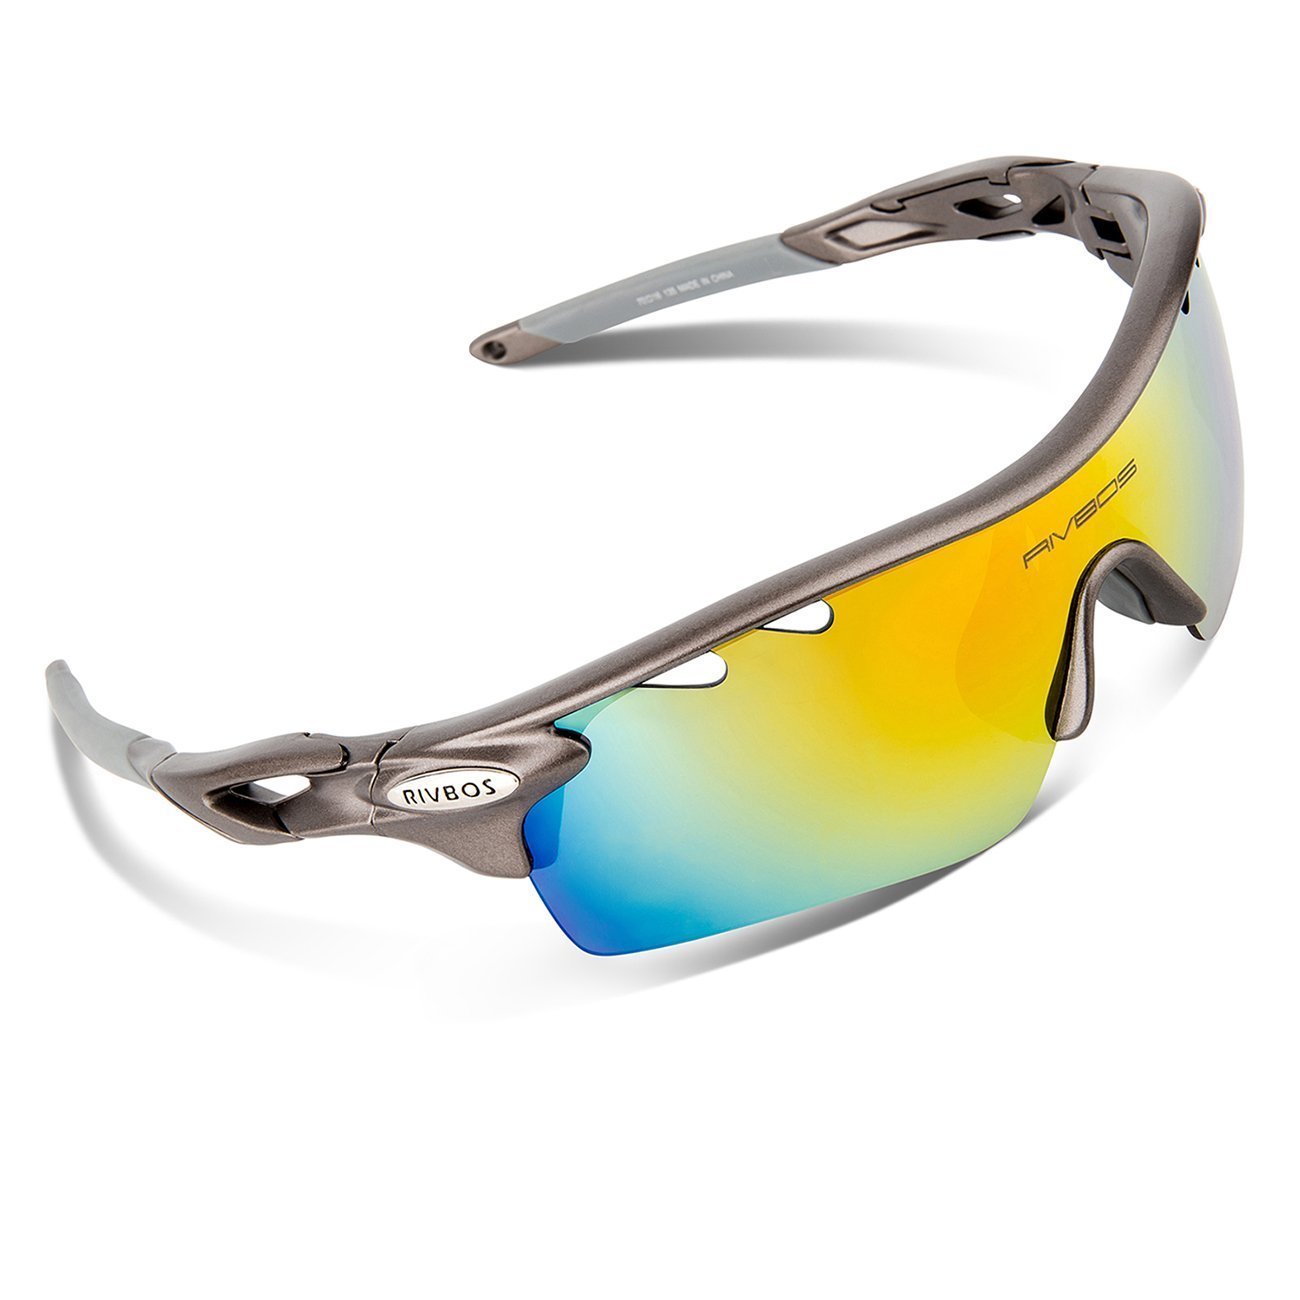 40986b21cb RIVBOS 801 Unisex Polarized Sports Sunglasses with 5 Interchangeable Lenses